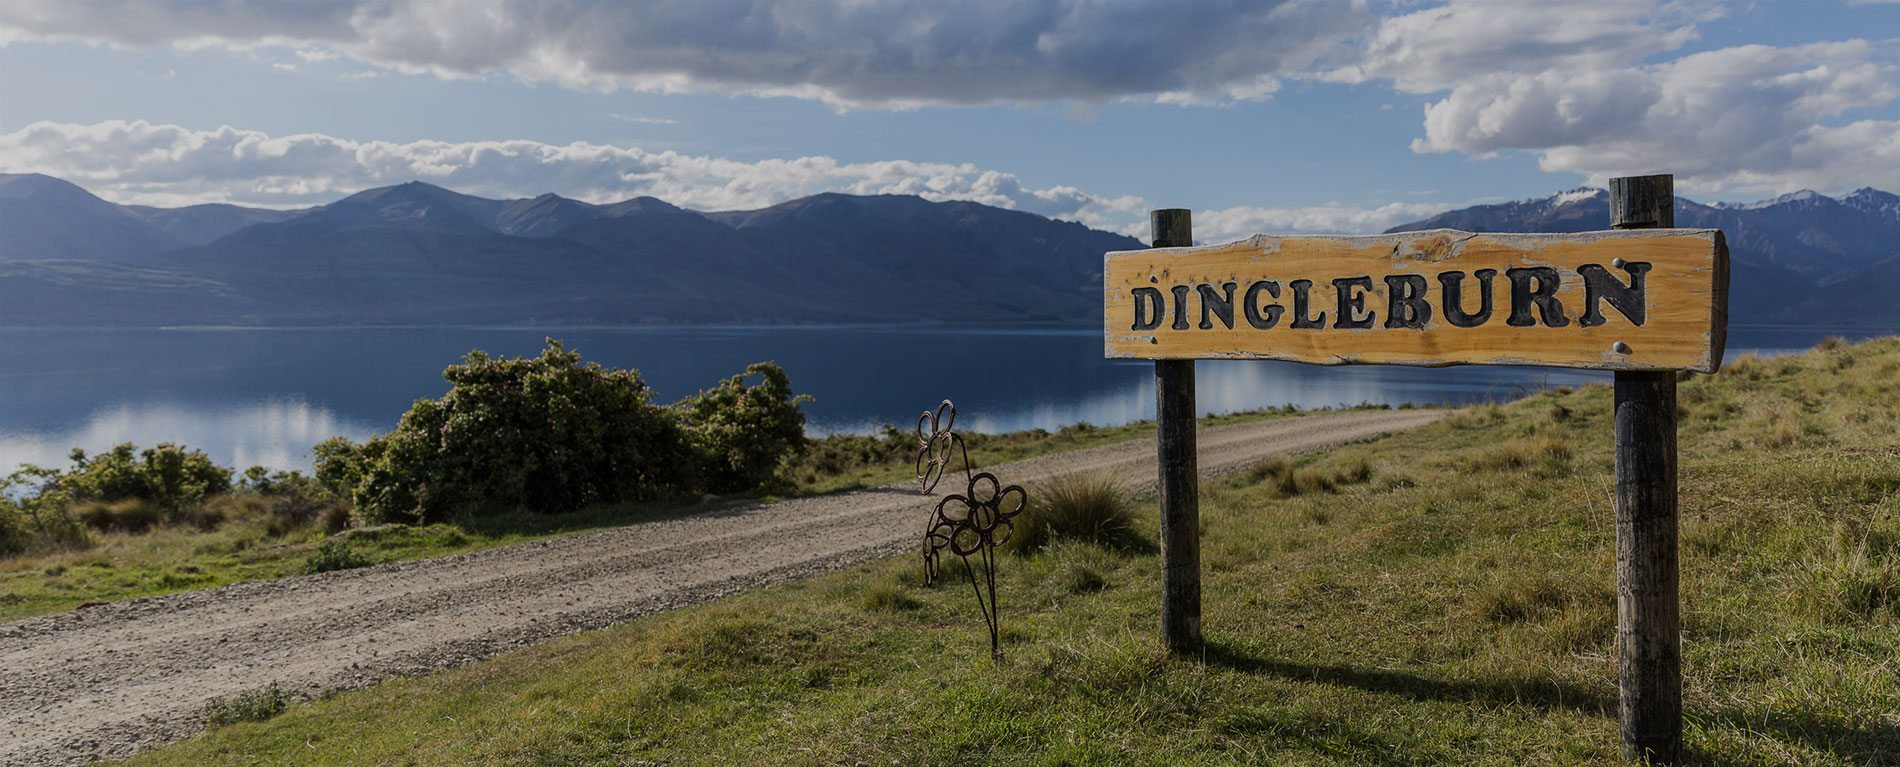 Visit Discover Dingleburn Station for a Kiwk Holiday in Wanaka NZ High Country Station - Home